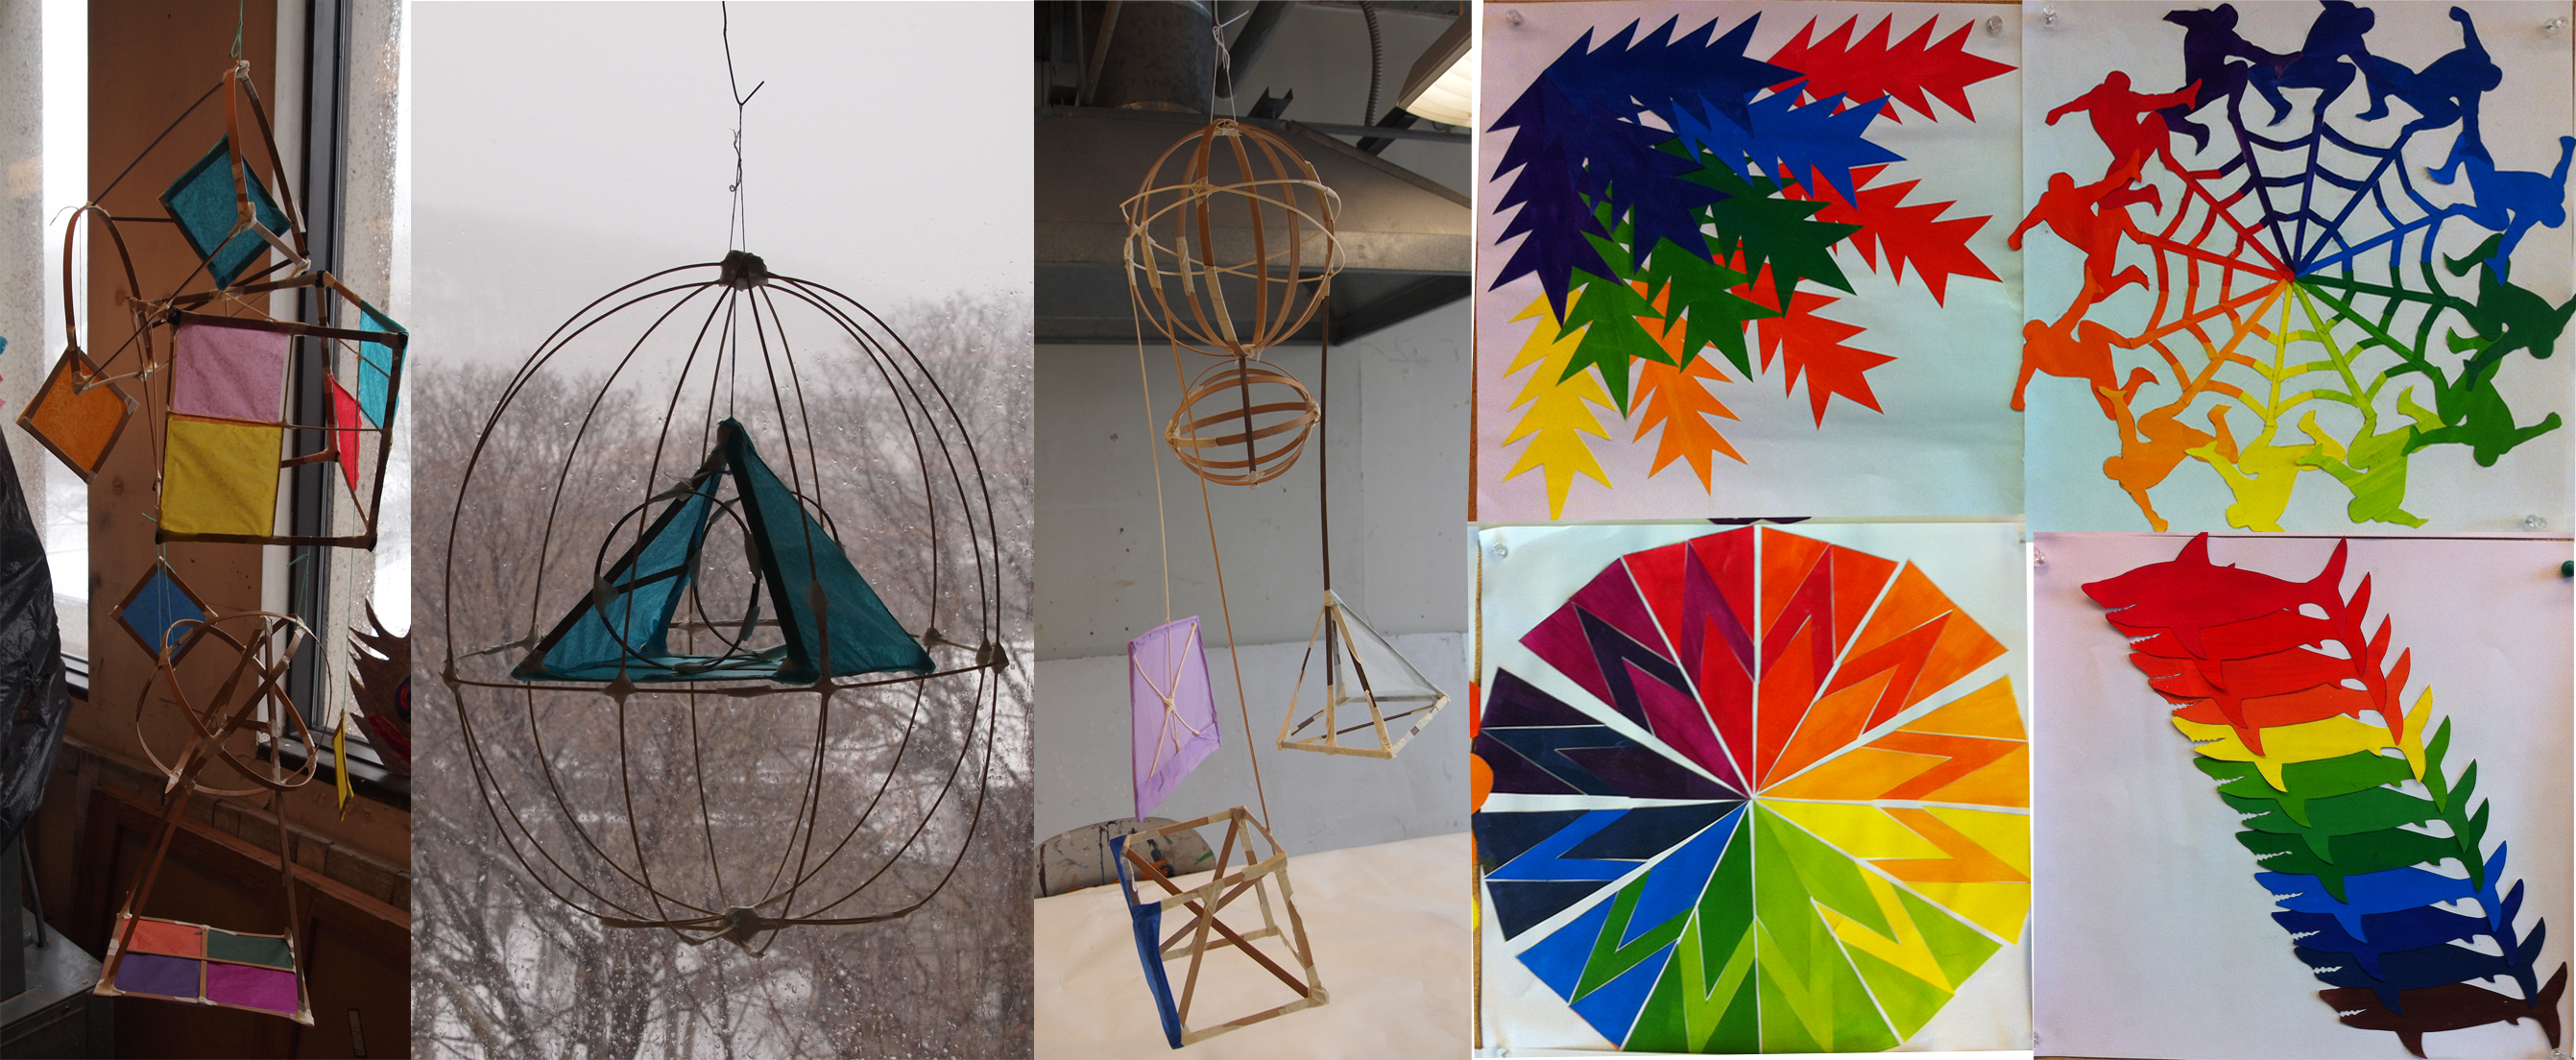 Visual Art Project Ideas For High School